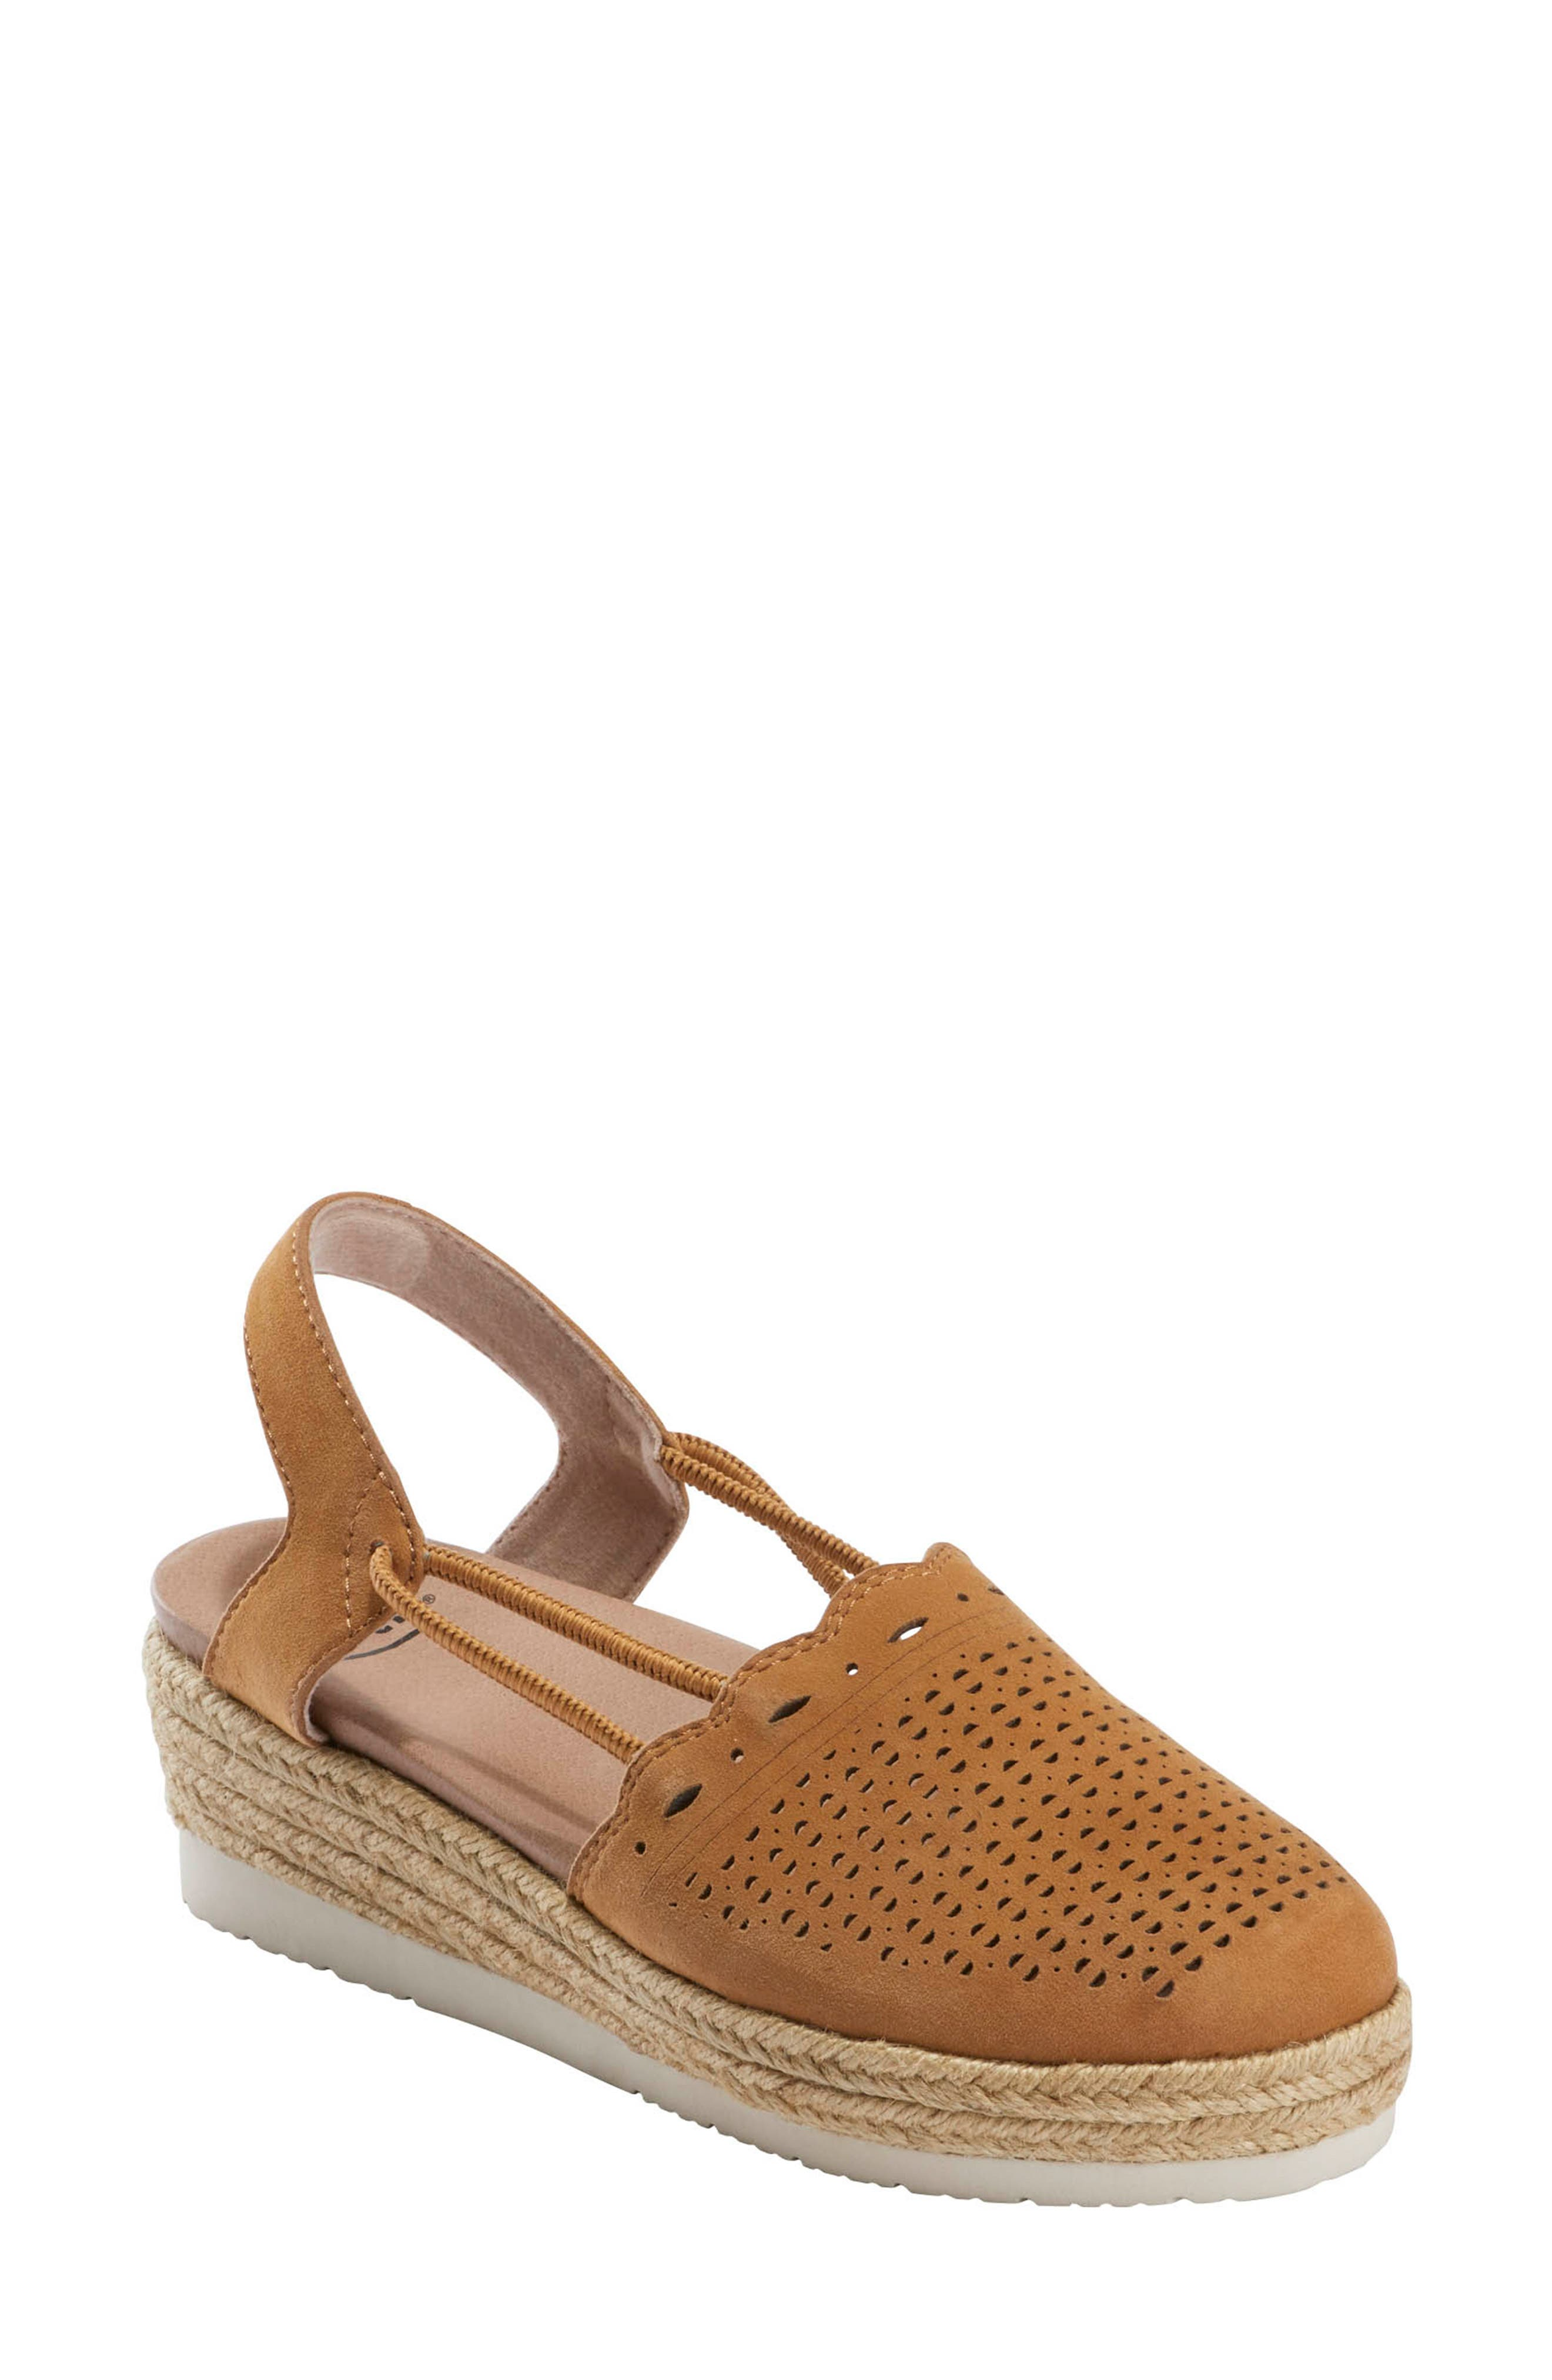 Braided jute trim brings an earthy element to a slingback wedge designed with a memory foam footbed for optimal everyday comfort. Style Name: Earth Buran Azalea Espadrille Wedge (Women). Style Number: 6024480. Available in stores.